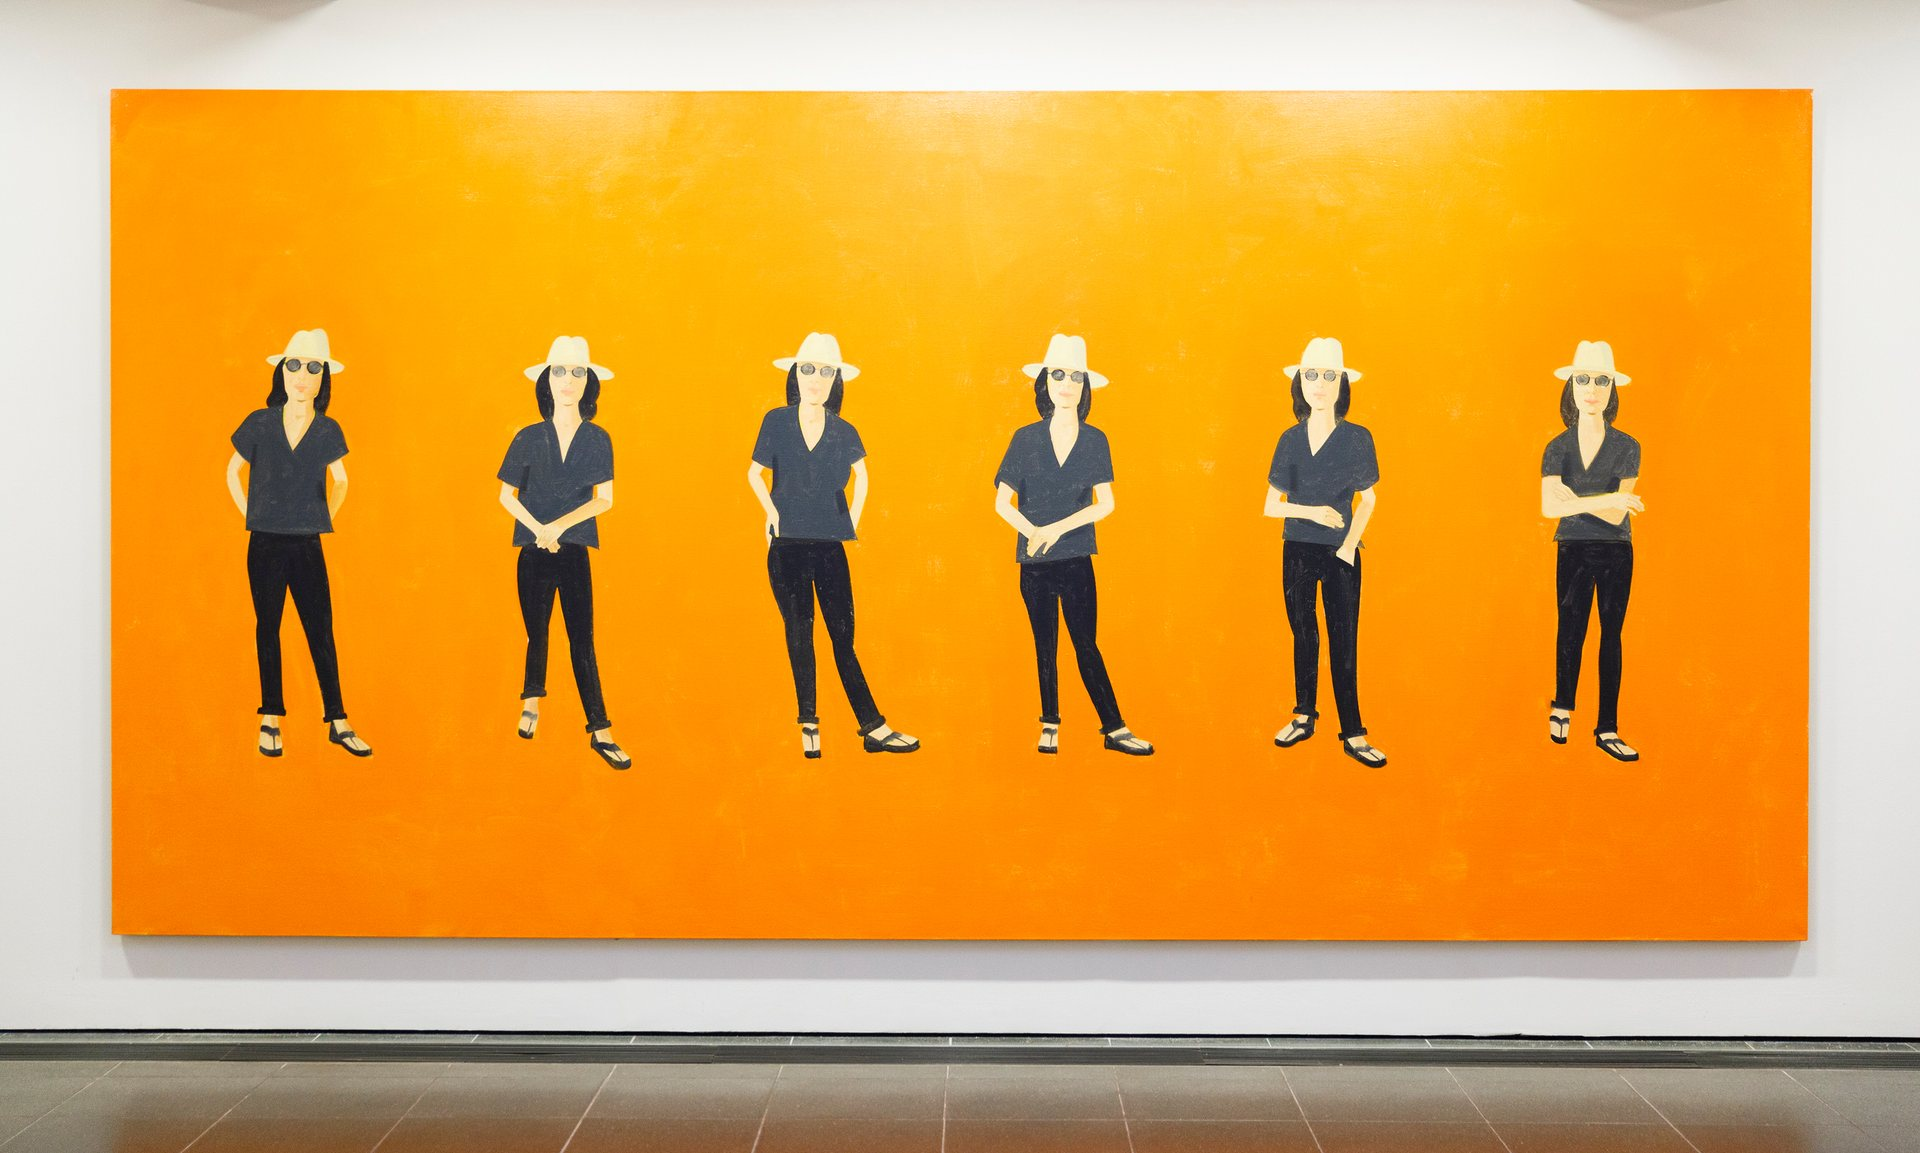 Alex Katz, Quick Light, Serpentine Gallery, London, Exhibition Review